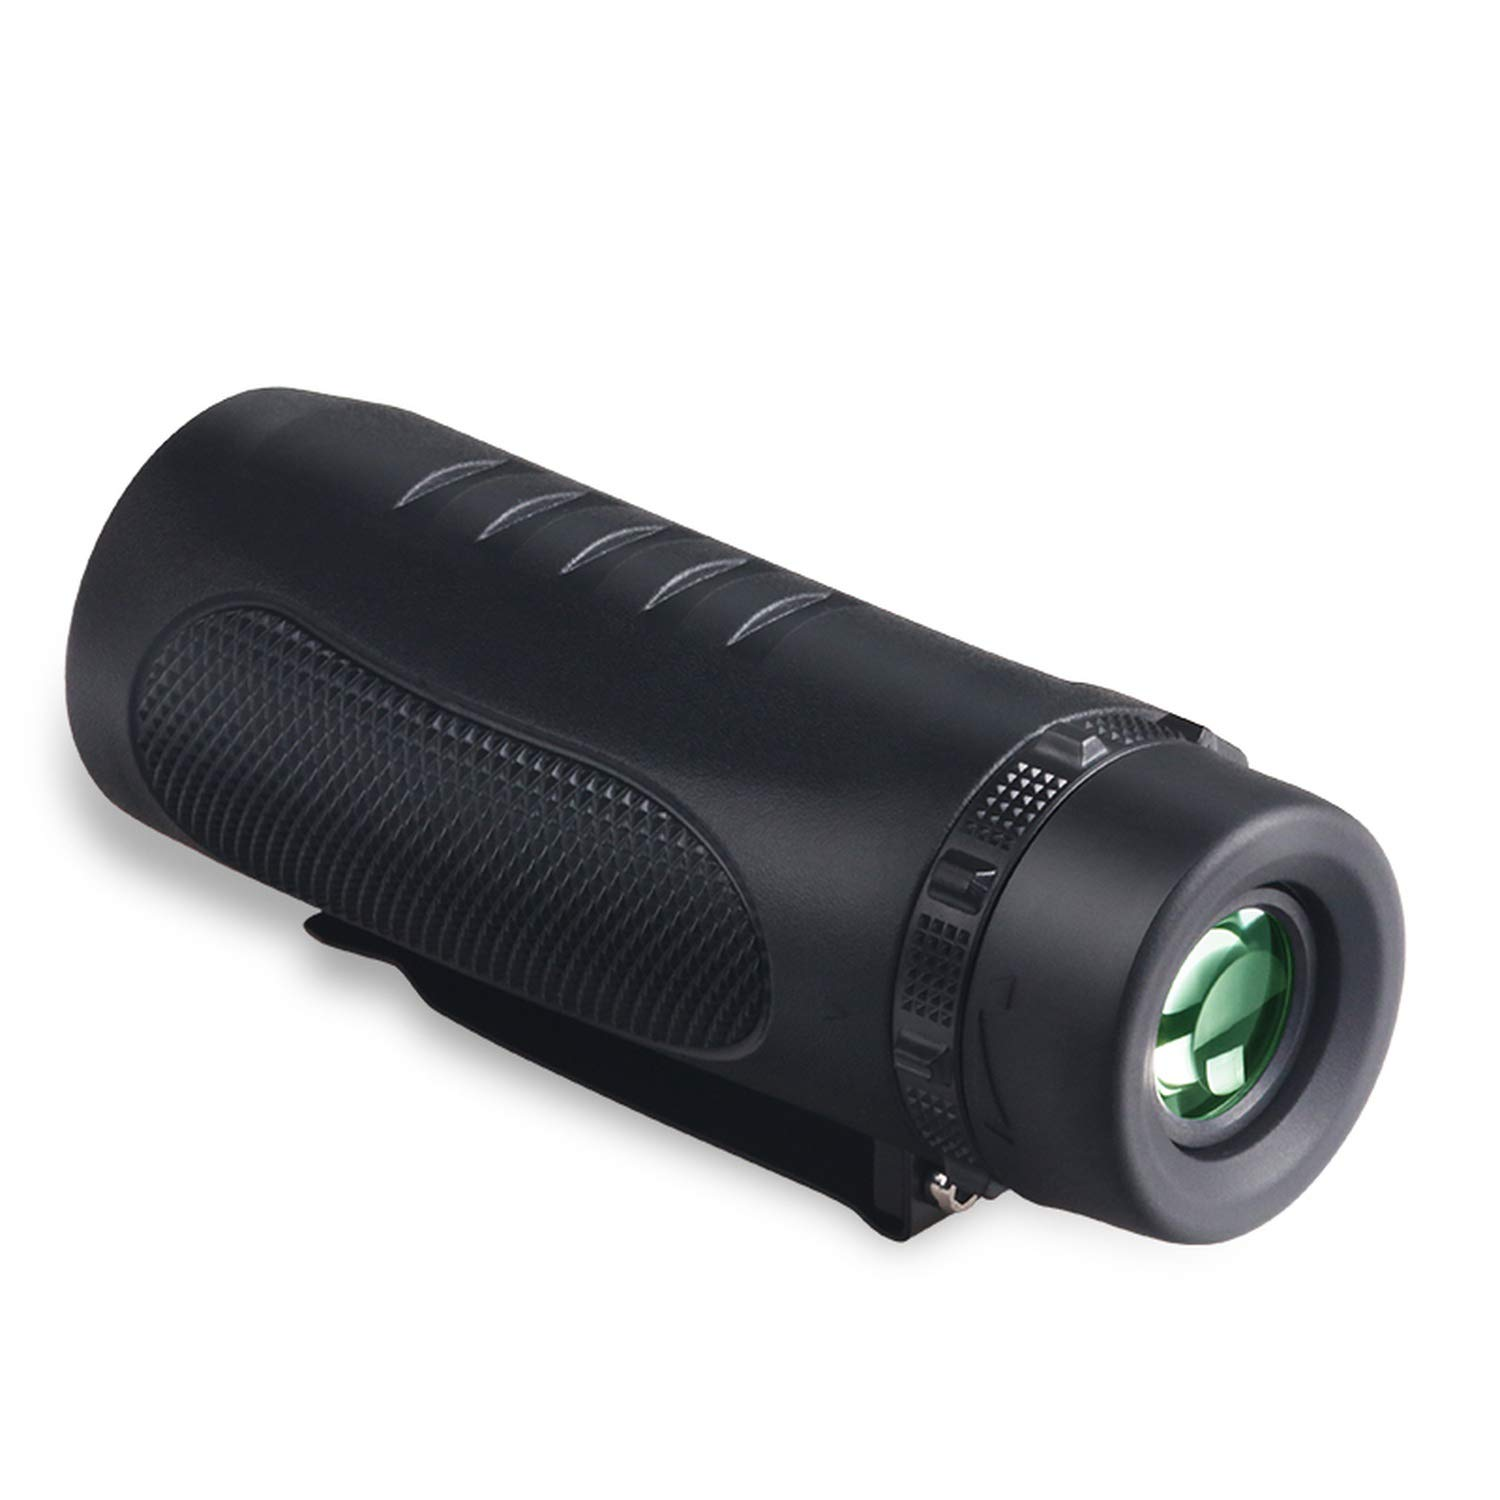 Crystal-heart-store 10X32 Powerful Multi-Coated Nautical Waterproof Monocular Prism Telescope with Clip Spotting Scope by Crystal-heart-store